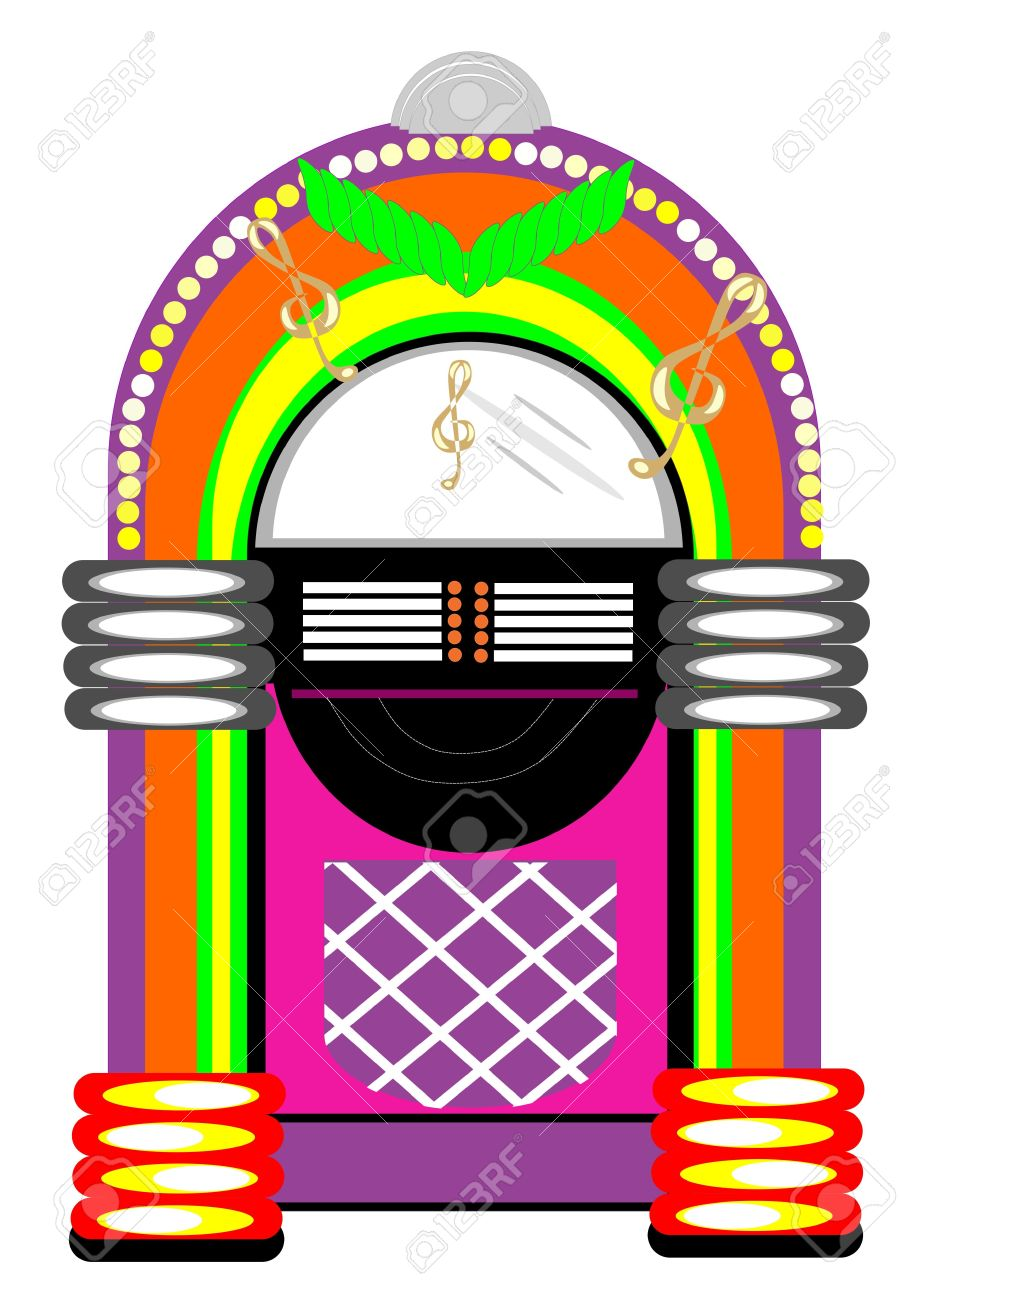 retro jukebox illustration royalty free cliparts vectors and stock rh 123rf com jukebox images clipart jukebox clipart